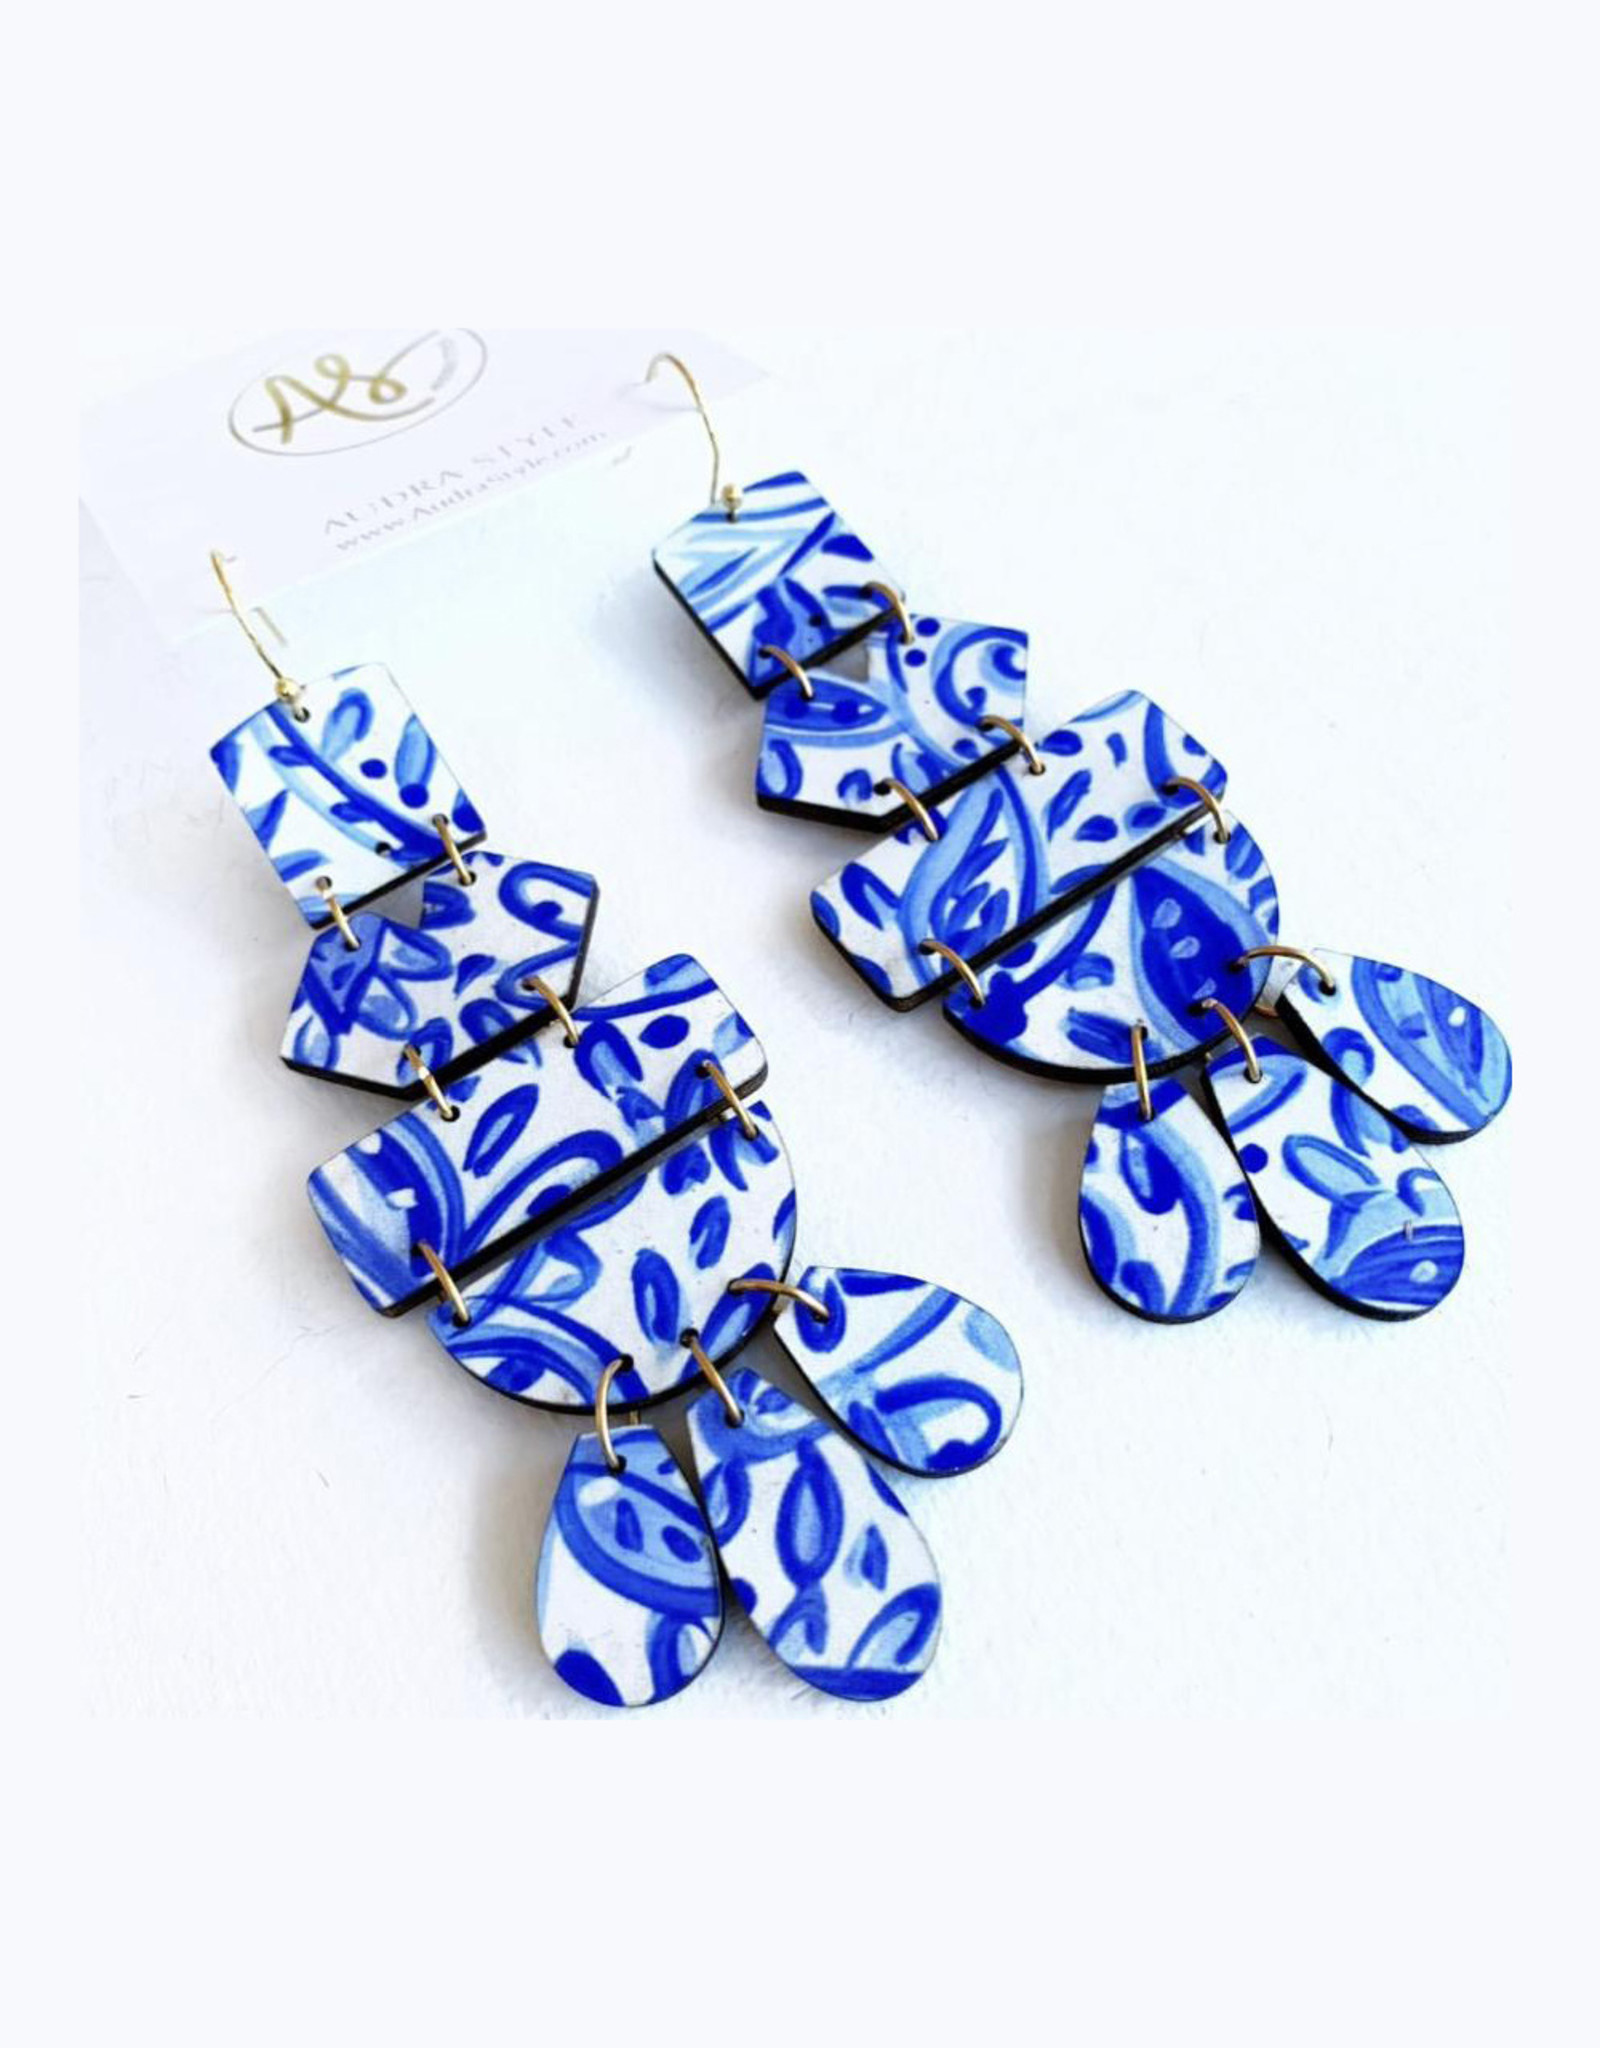 Audra Style Belle Earrings - Blue White